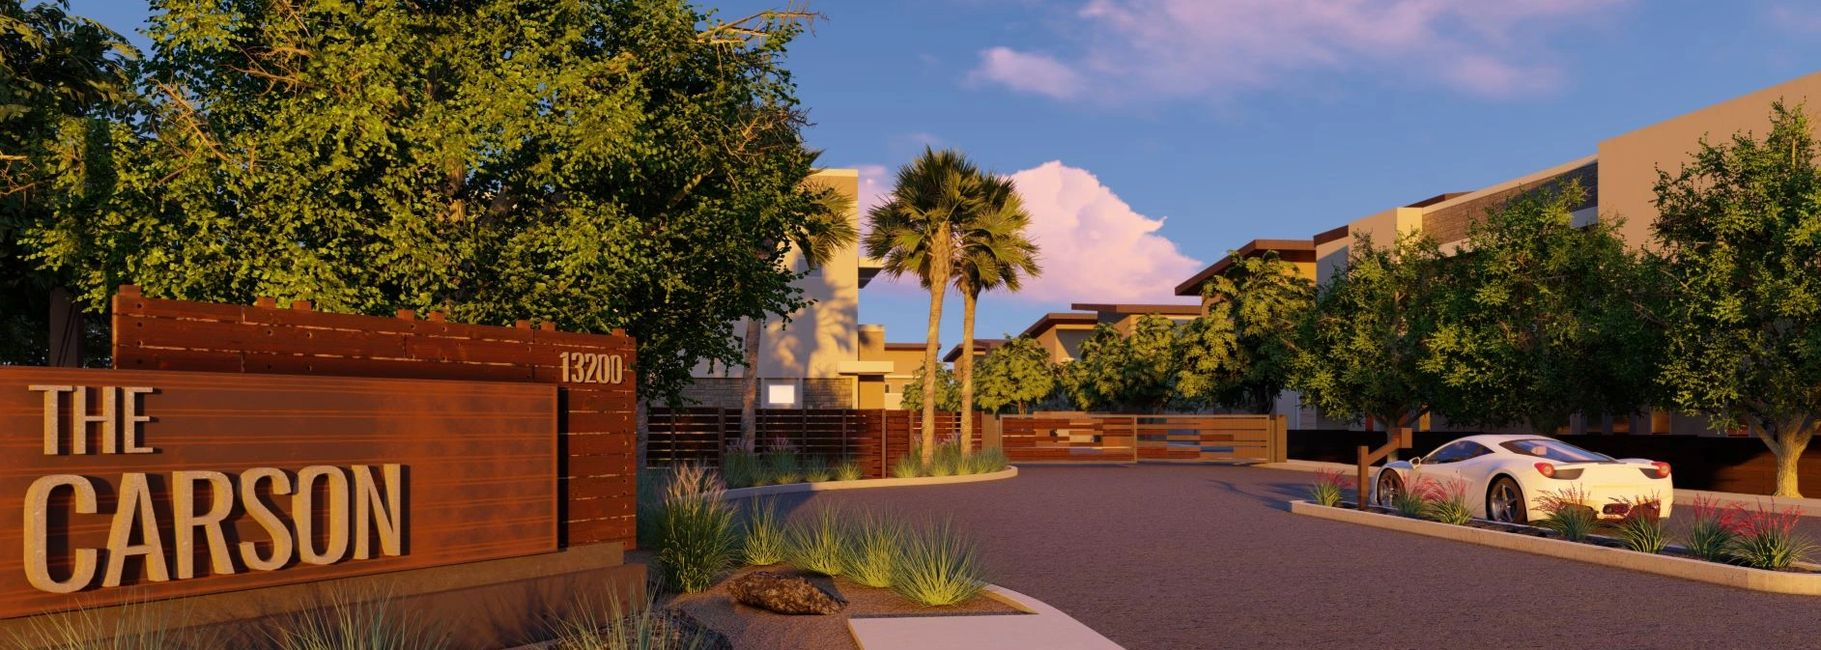 The Carson Townhomes rendering from WERK landscape architecture in Gilbert Arizona